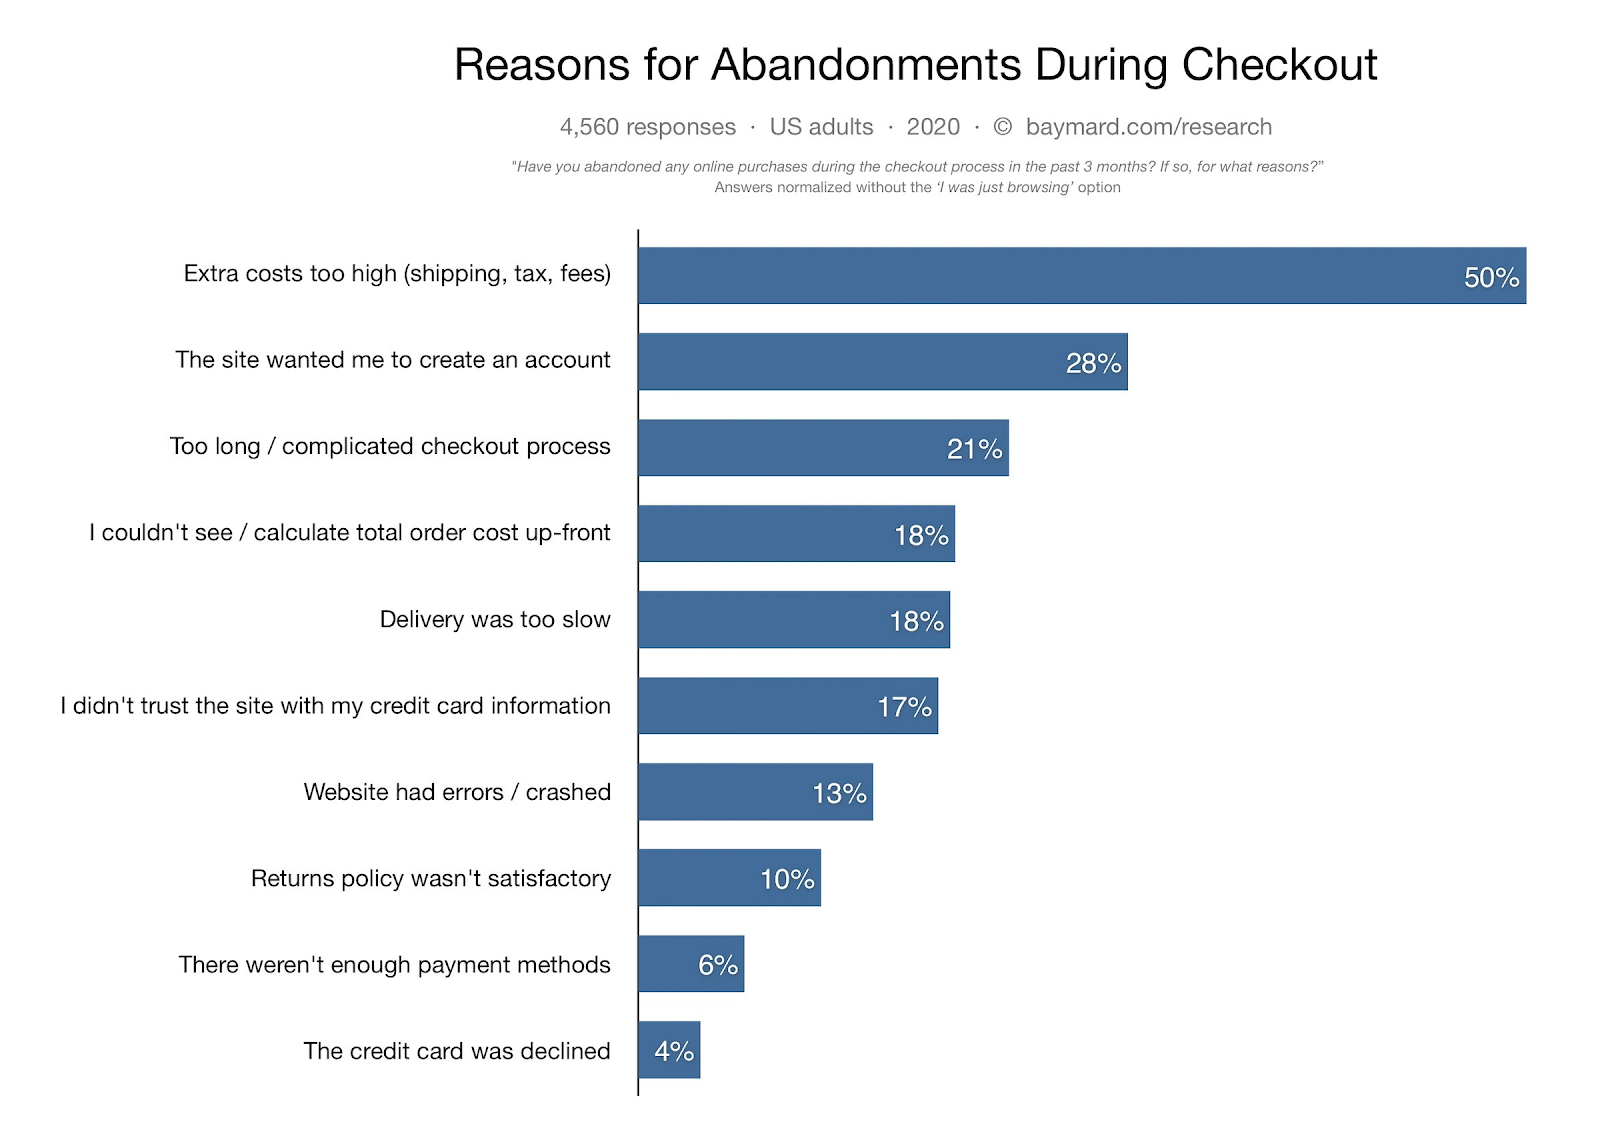 Reasons for cart abandonment during Checkout